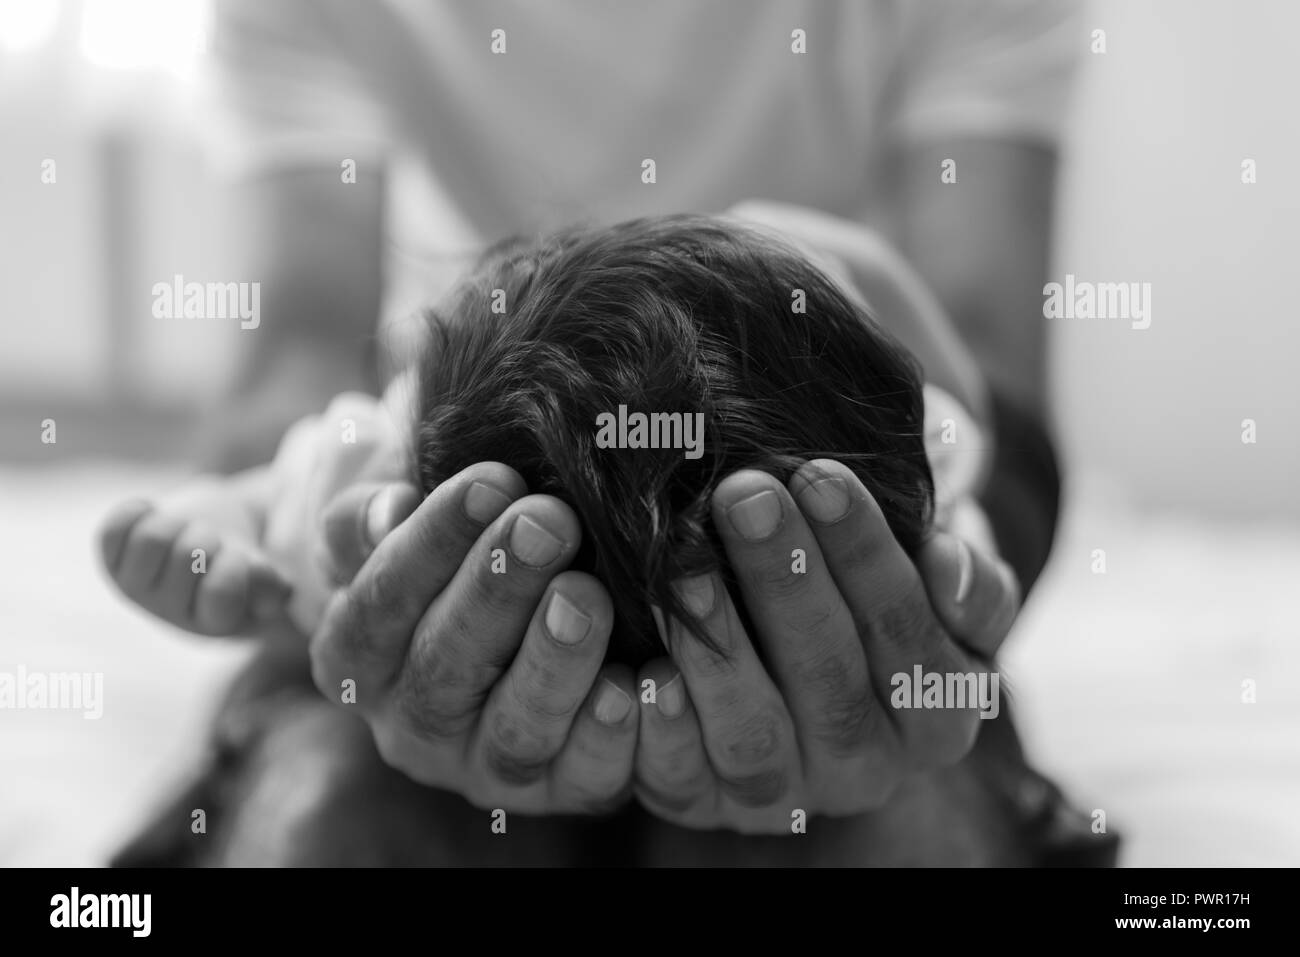 Father is holding the head of his newborn baby in hands, close up. - Stock Image